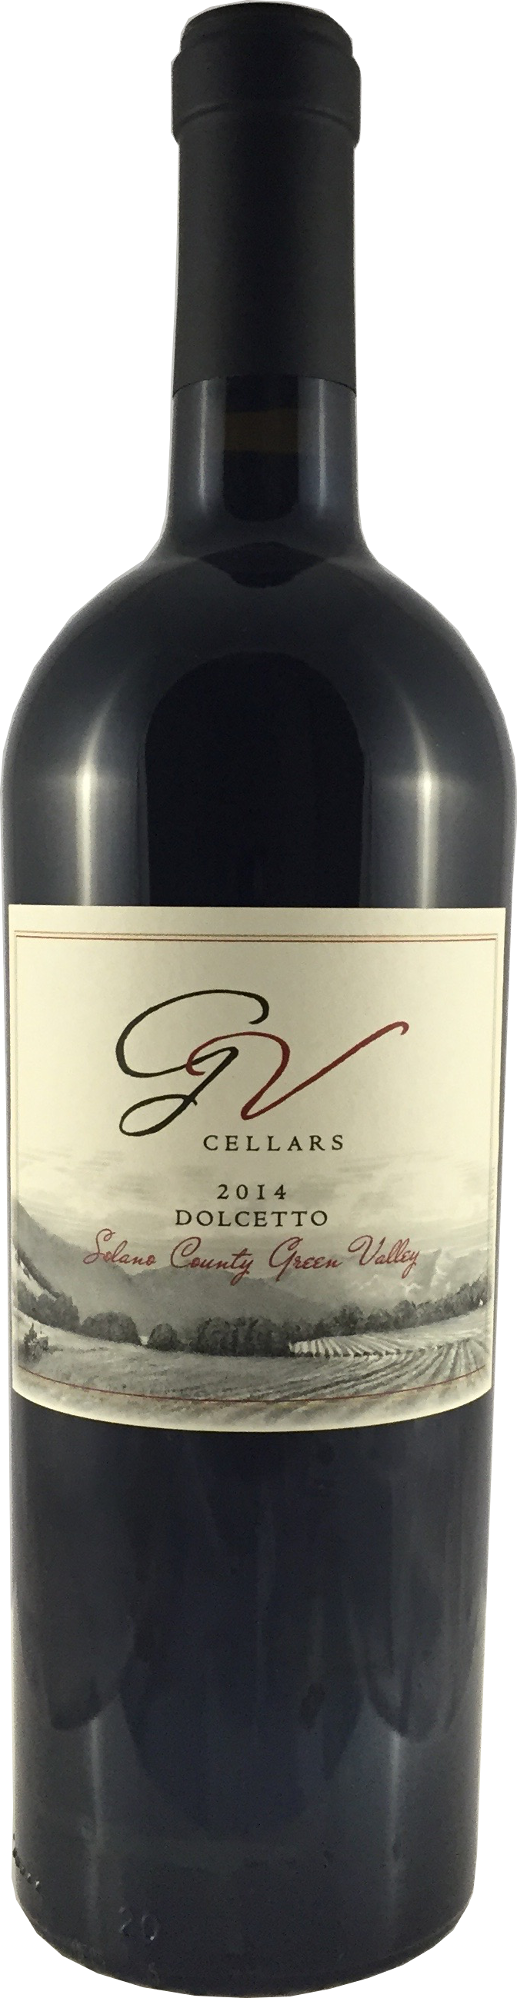 GV Cellars 2014 Dolcetto Solano County/ Green Valley - Qorkz